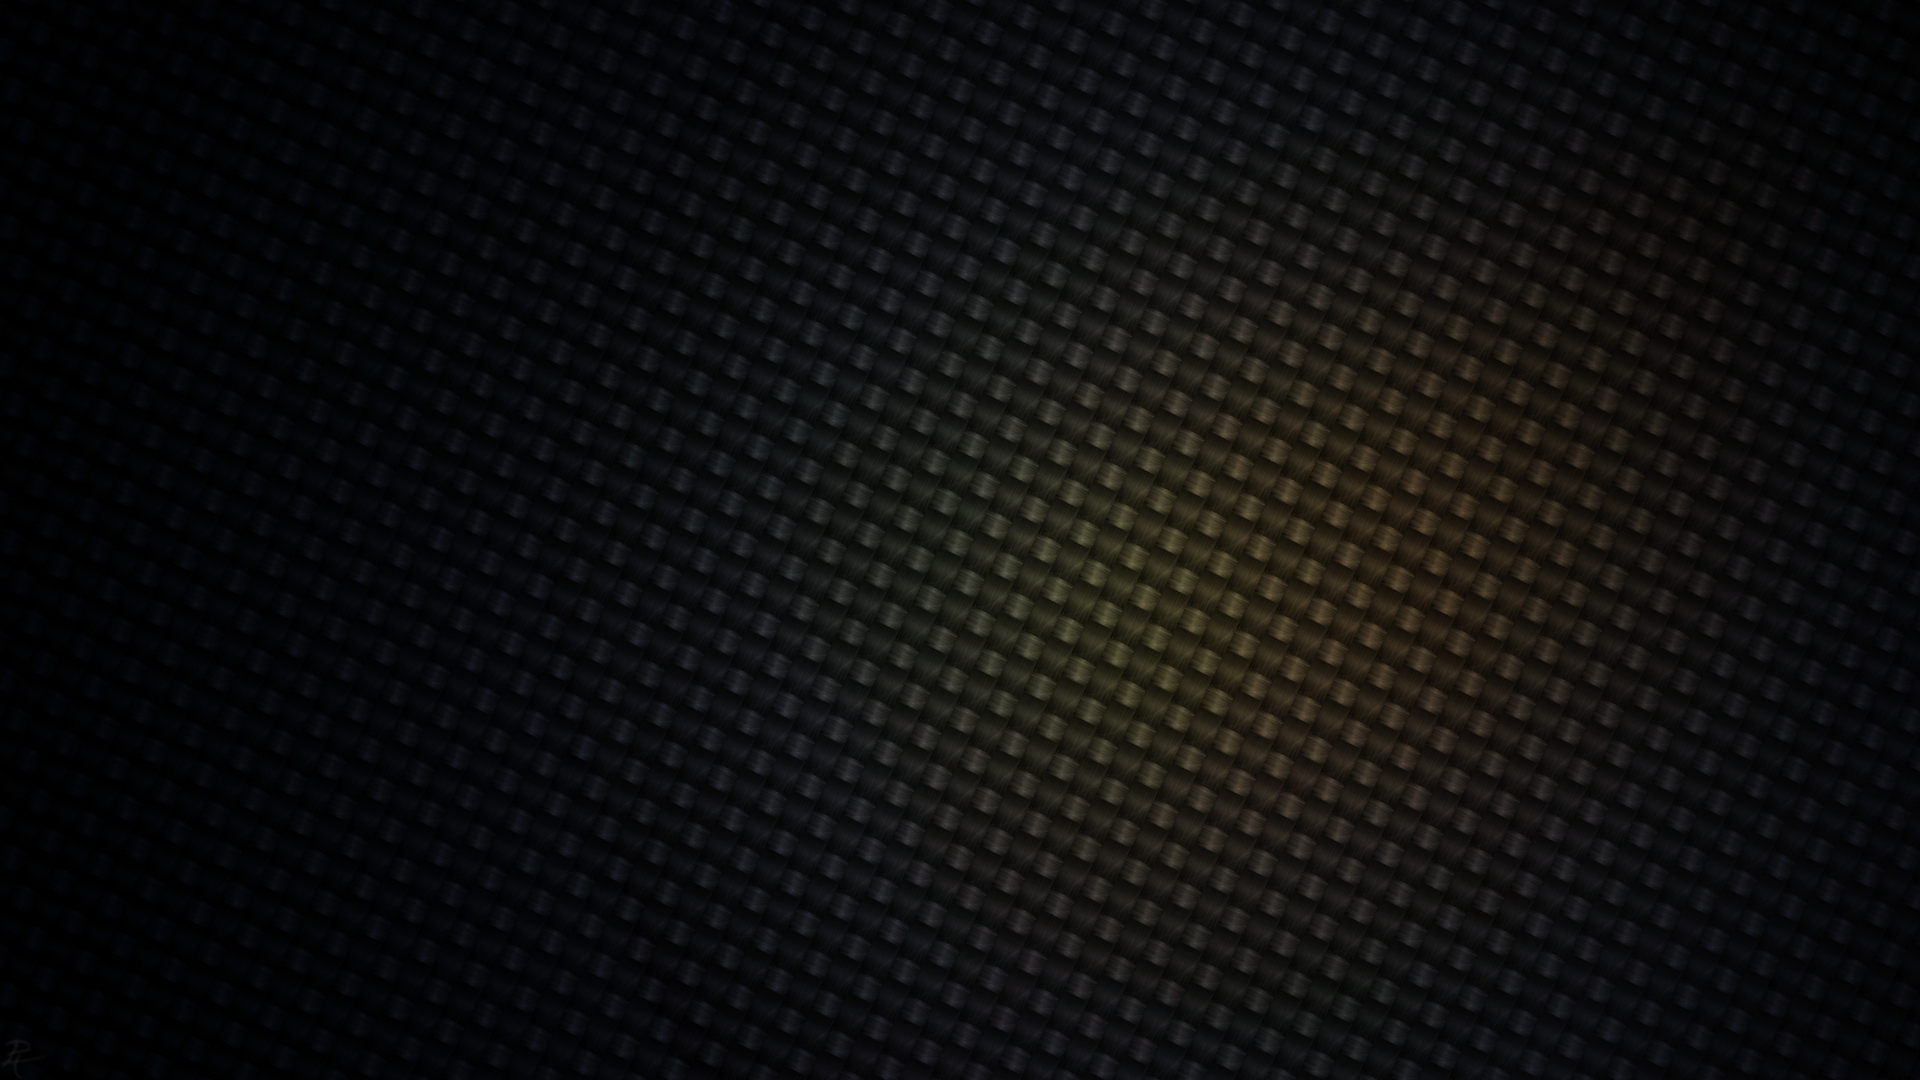 carbon-fiber-background-hd-wallpapers - wallpaper.wiki